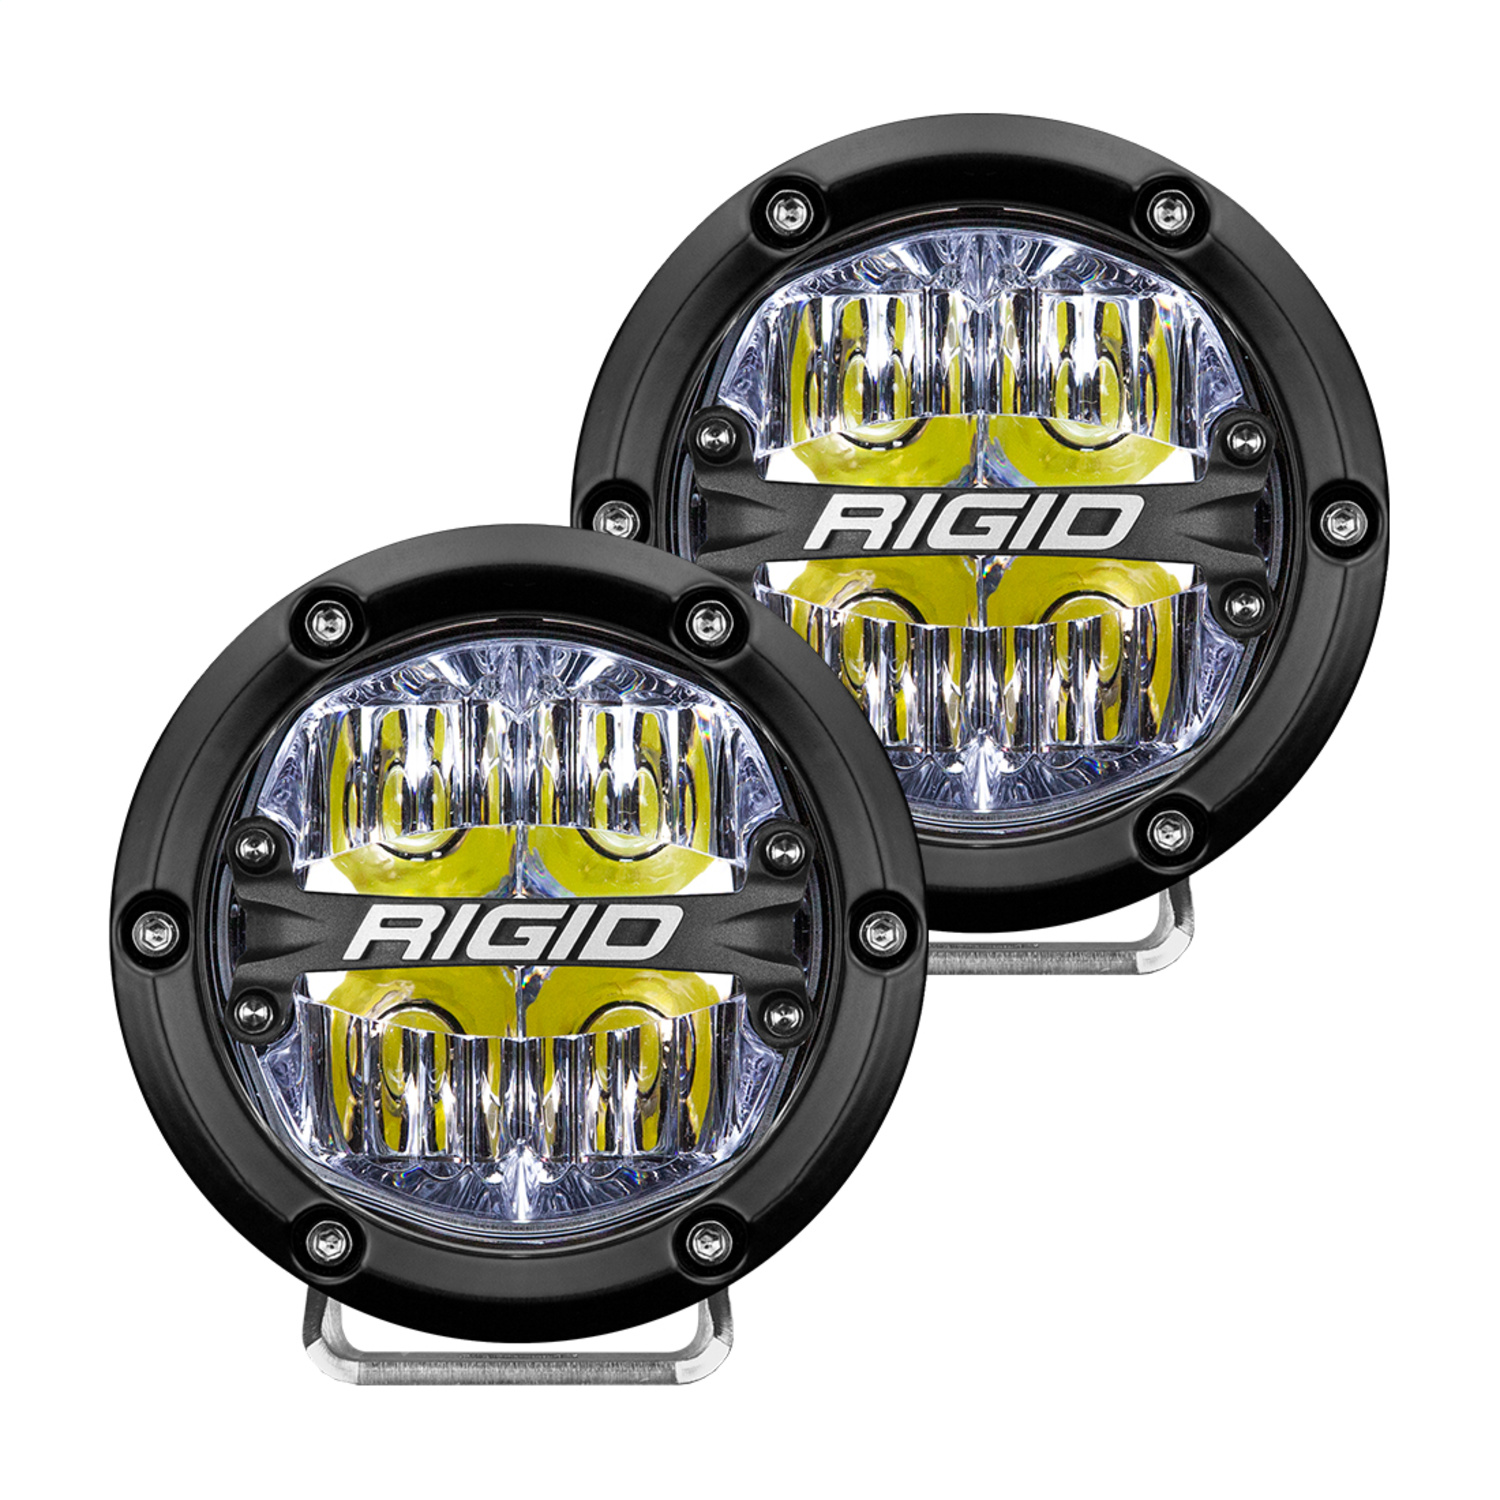 360-Series LED Off-Road Light, 4 in., Drive Beam, For Moderate Speed 20-50 MPH Plus, White Backlight, Pair